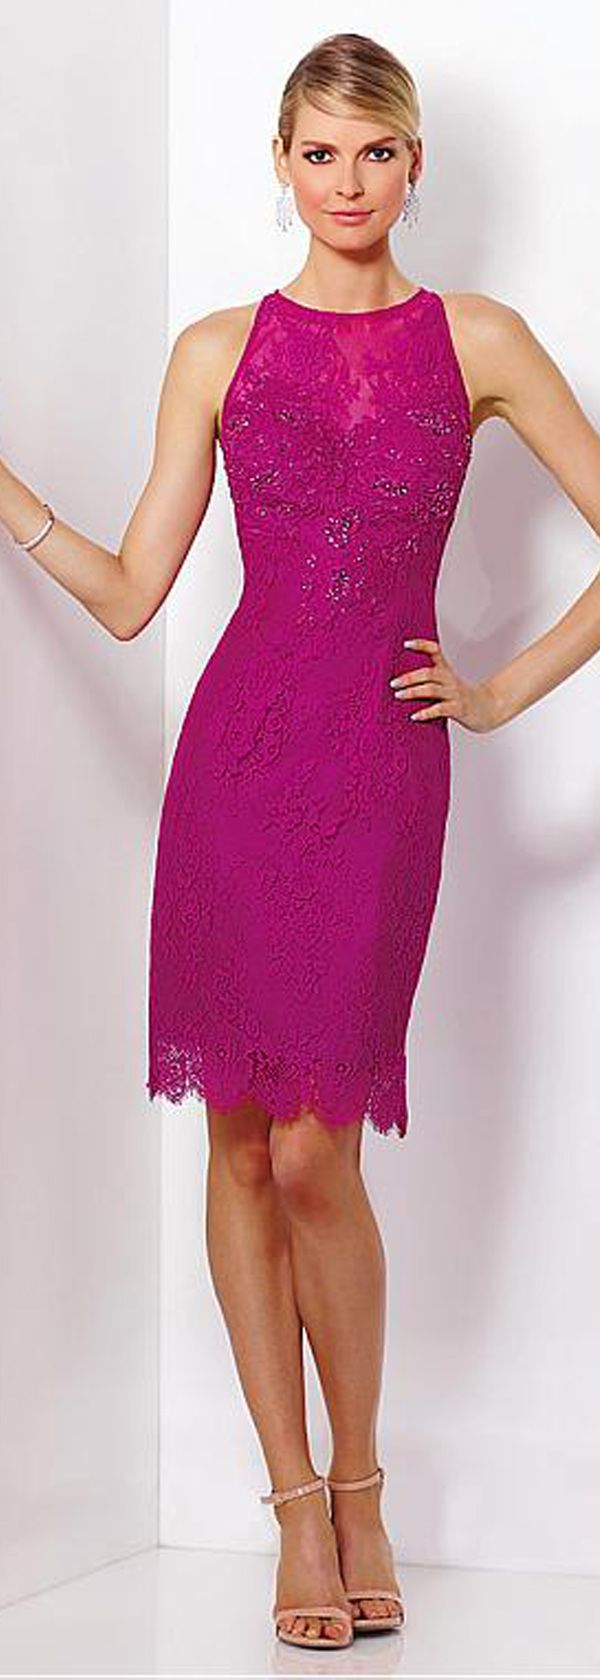 Stunning Lace Jewel Neckline Short Sheath Mother Of The Bride ...